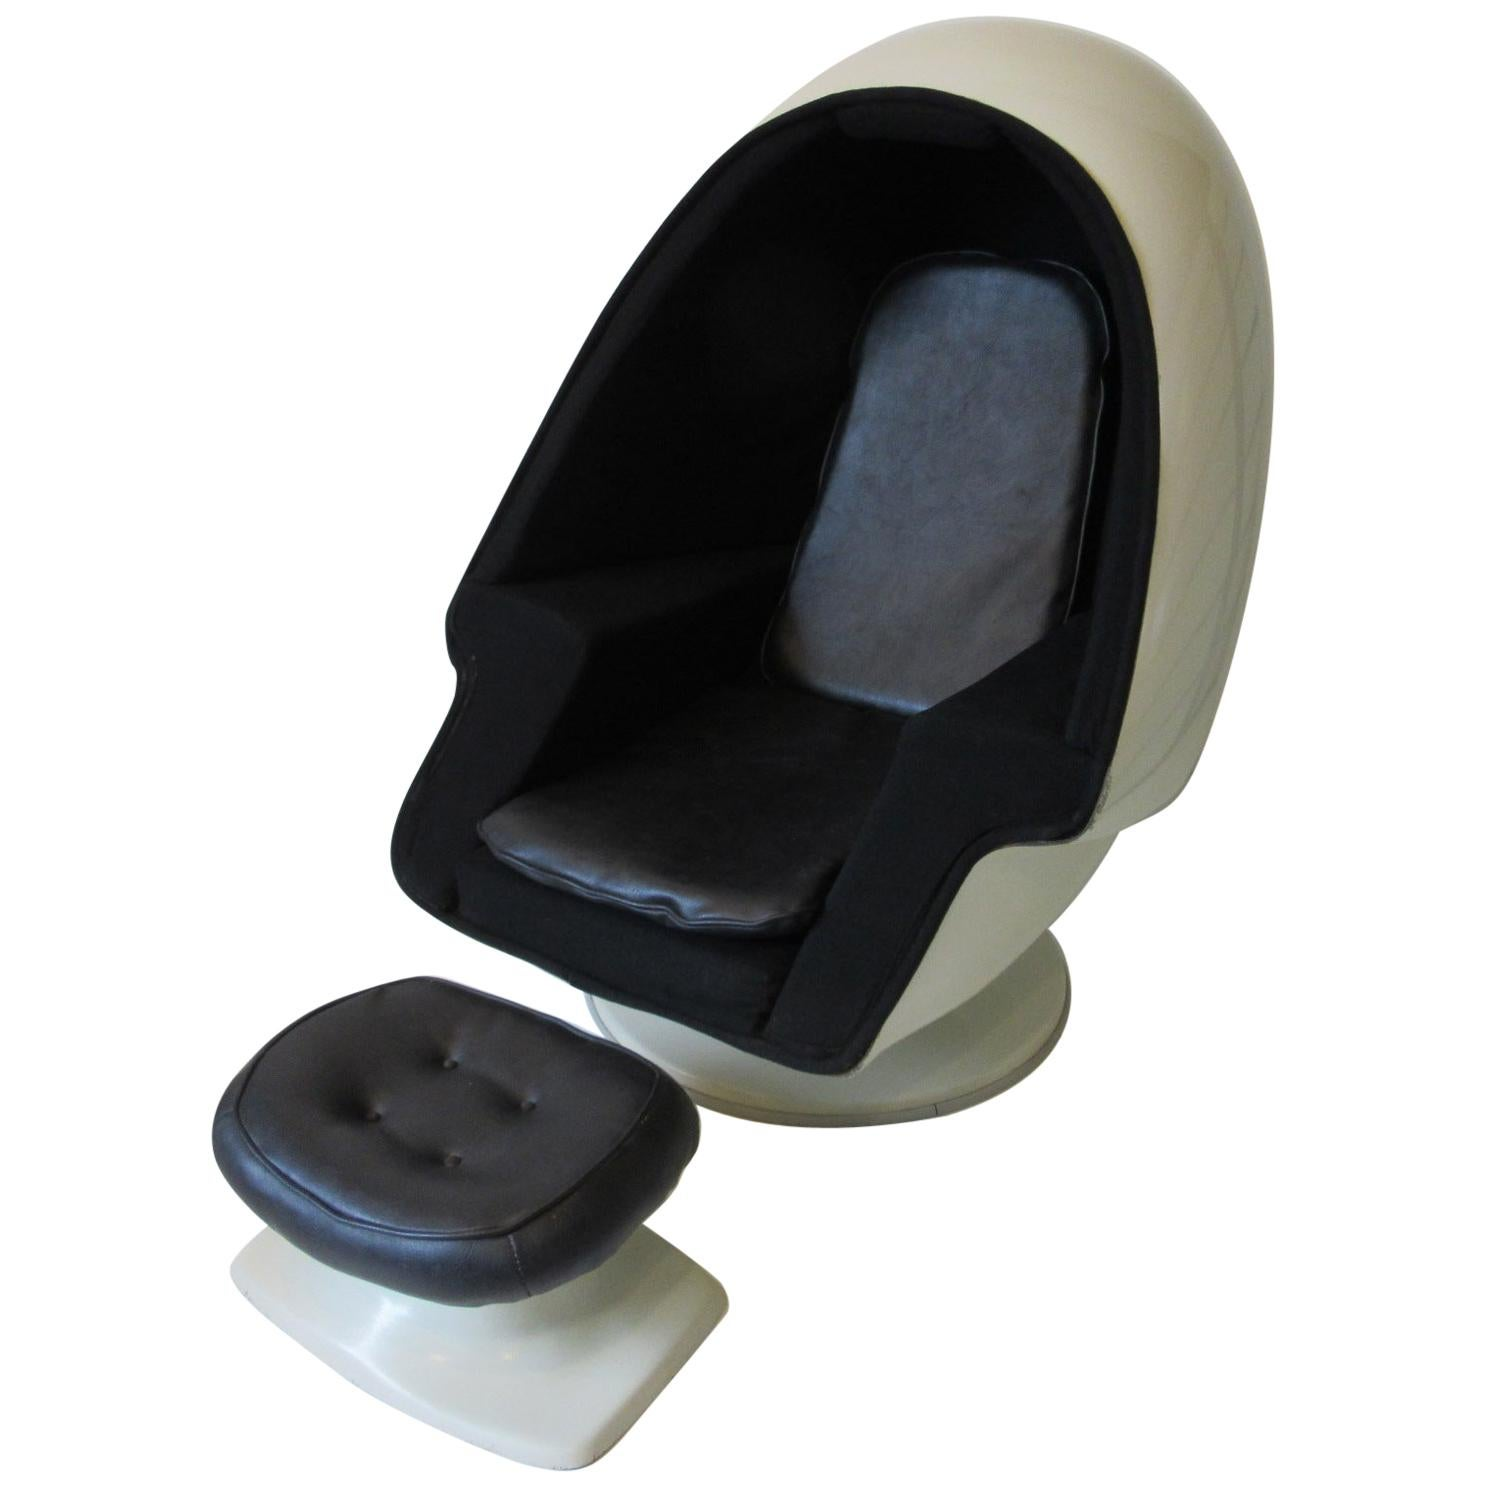 70's Space Age Stereo Egg Chair w/ Ottoman by Lee West Co.